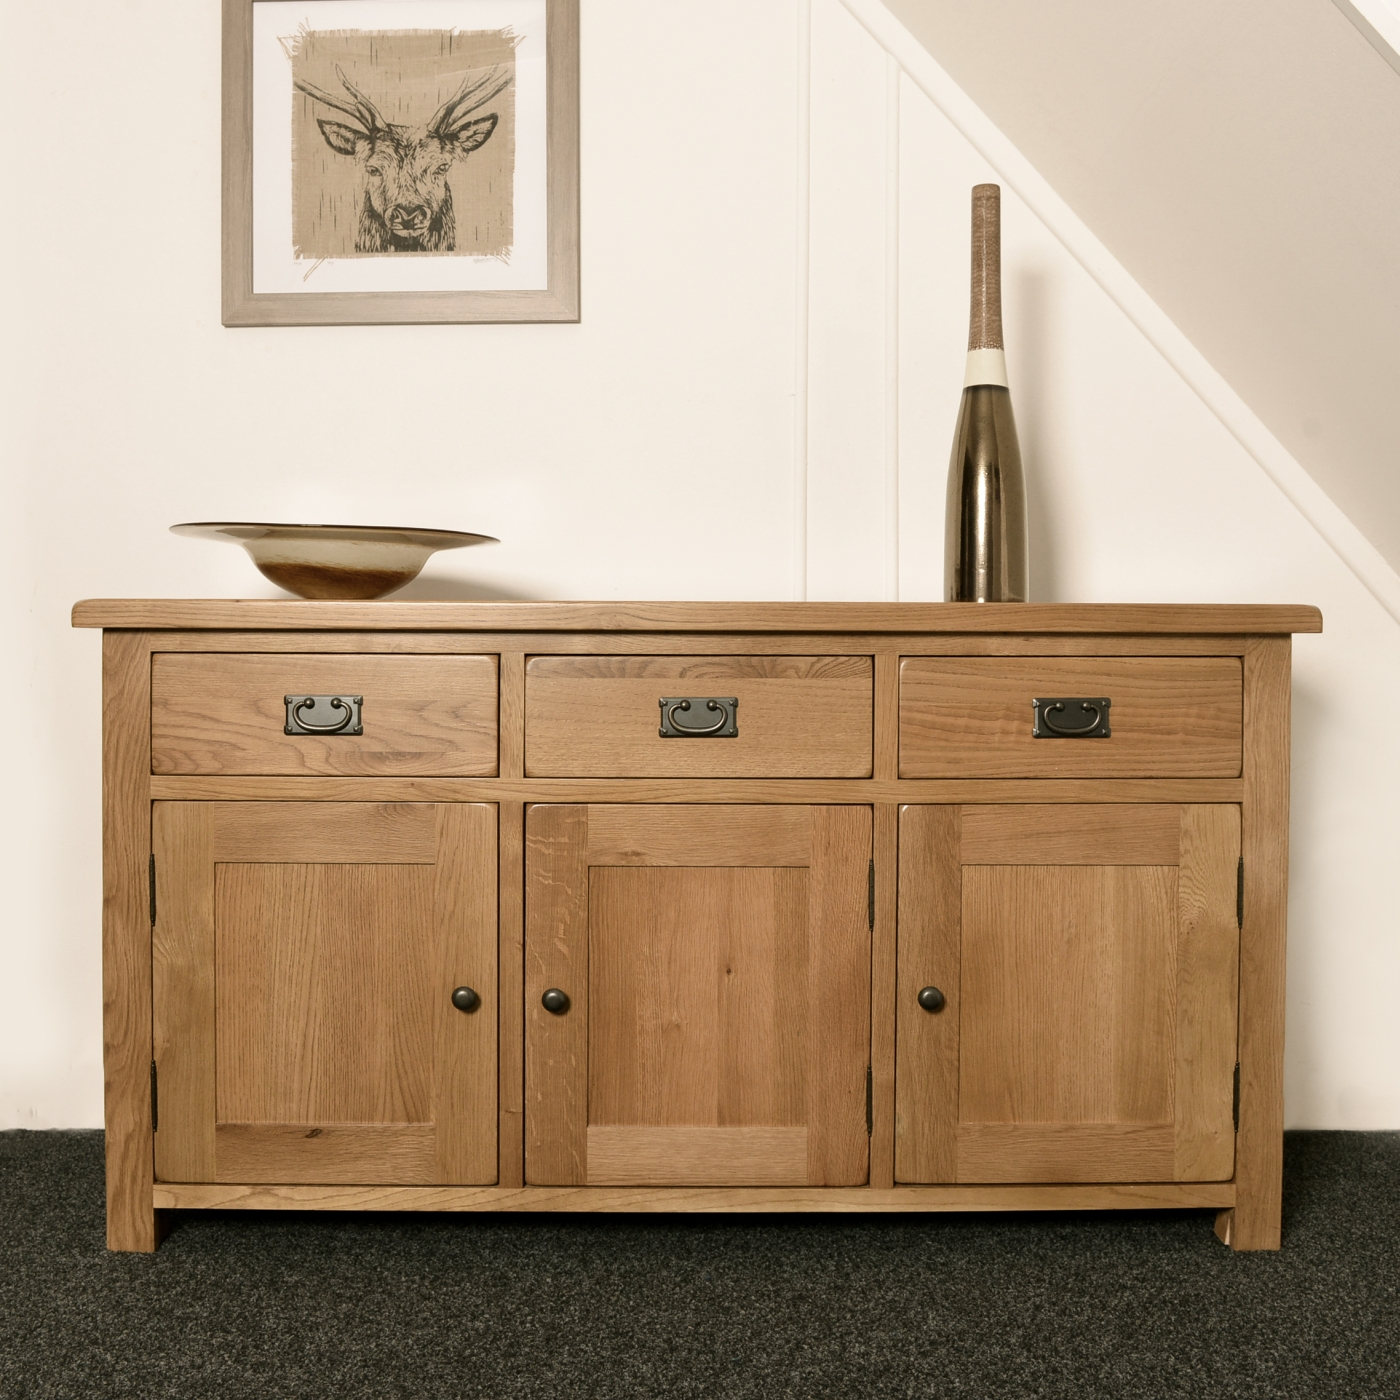 Solid Oak Extra Large Sideboard Dining Living Room Traditional Rustic Furnitu